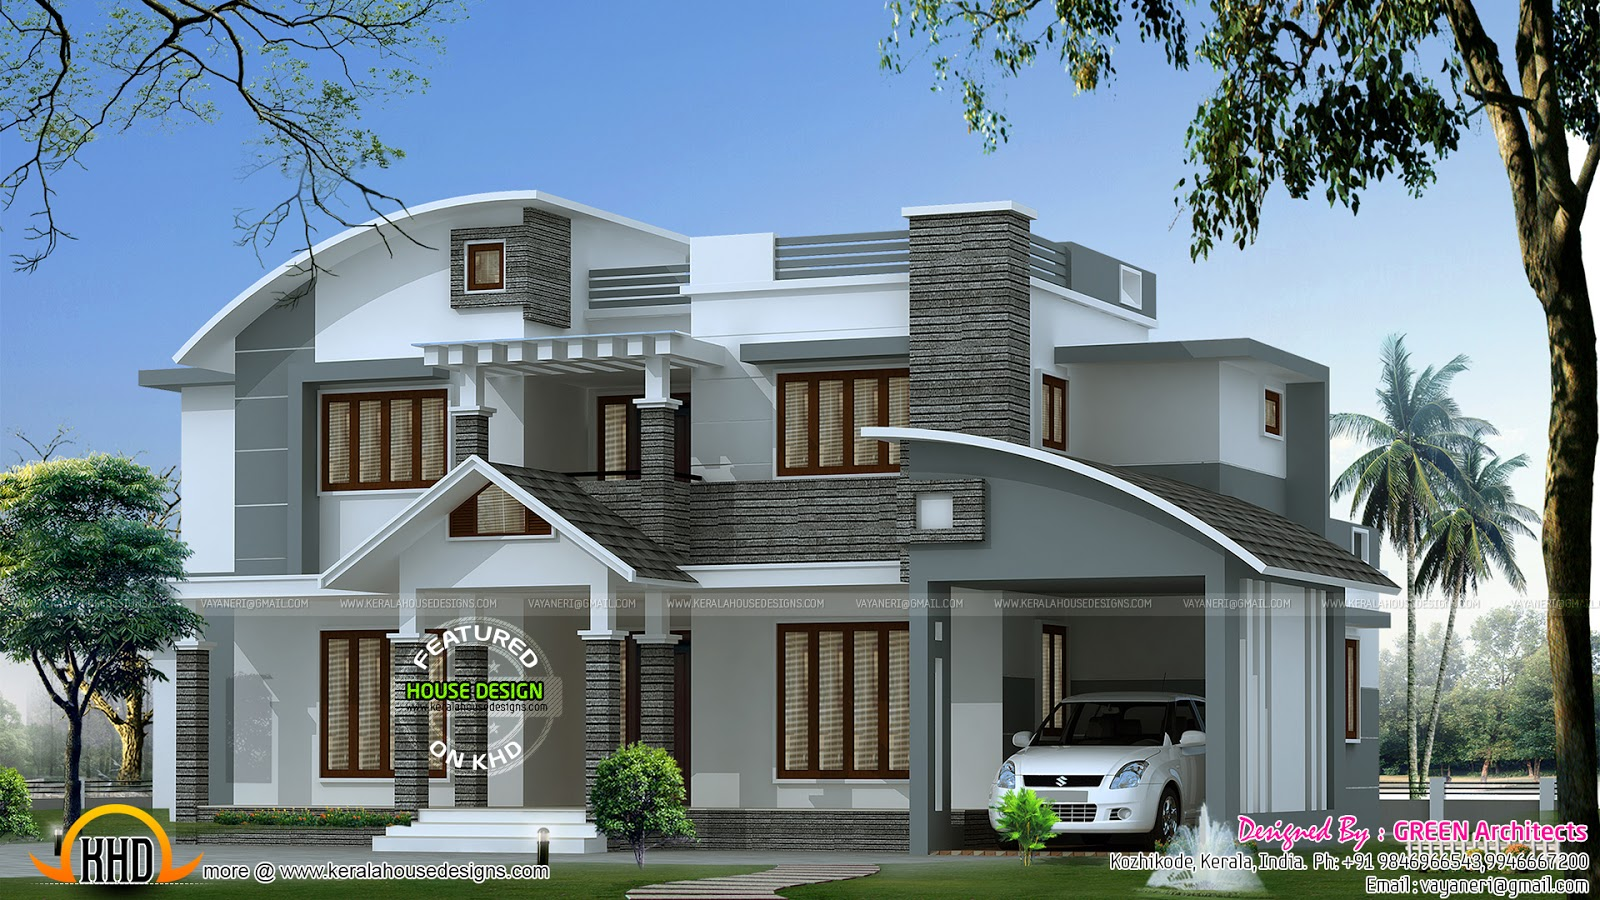 Contemporary mix house in 2500 sq ft kerala home design for 2500 sq ft house plans in kerala